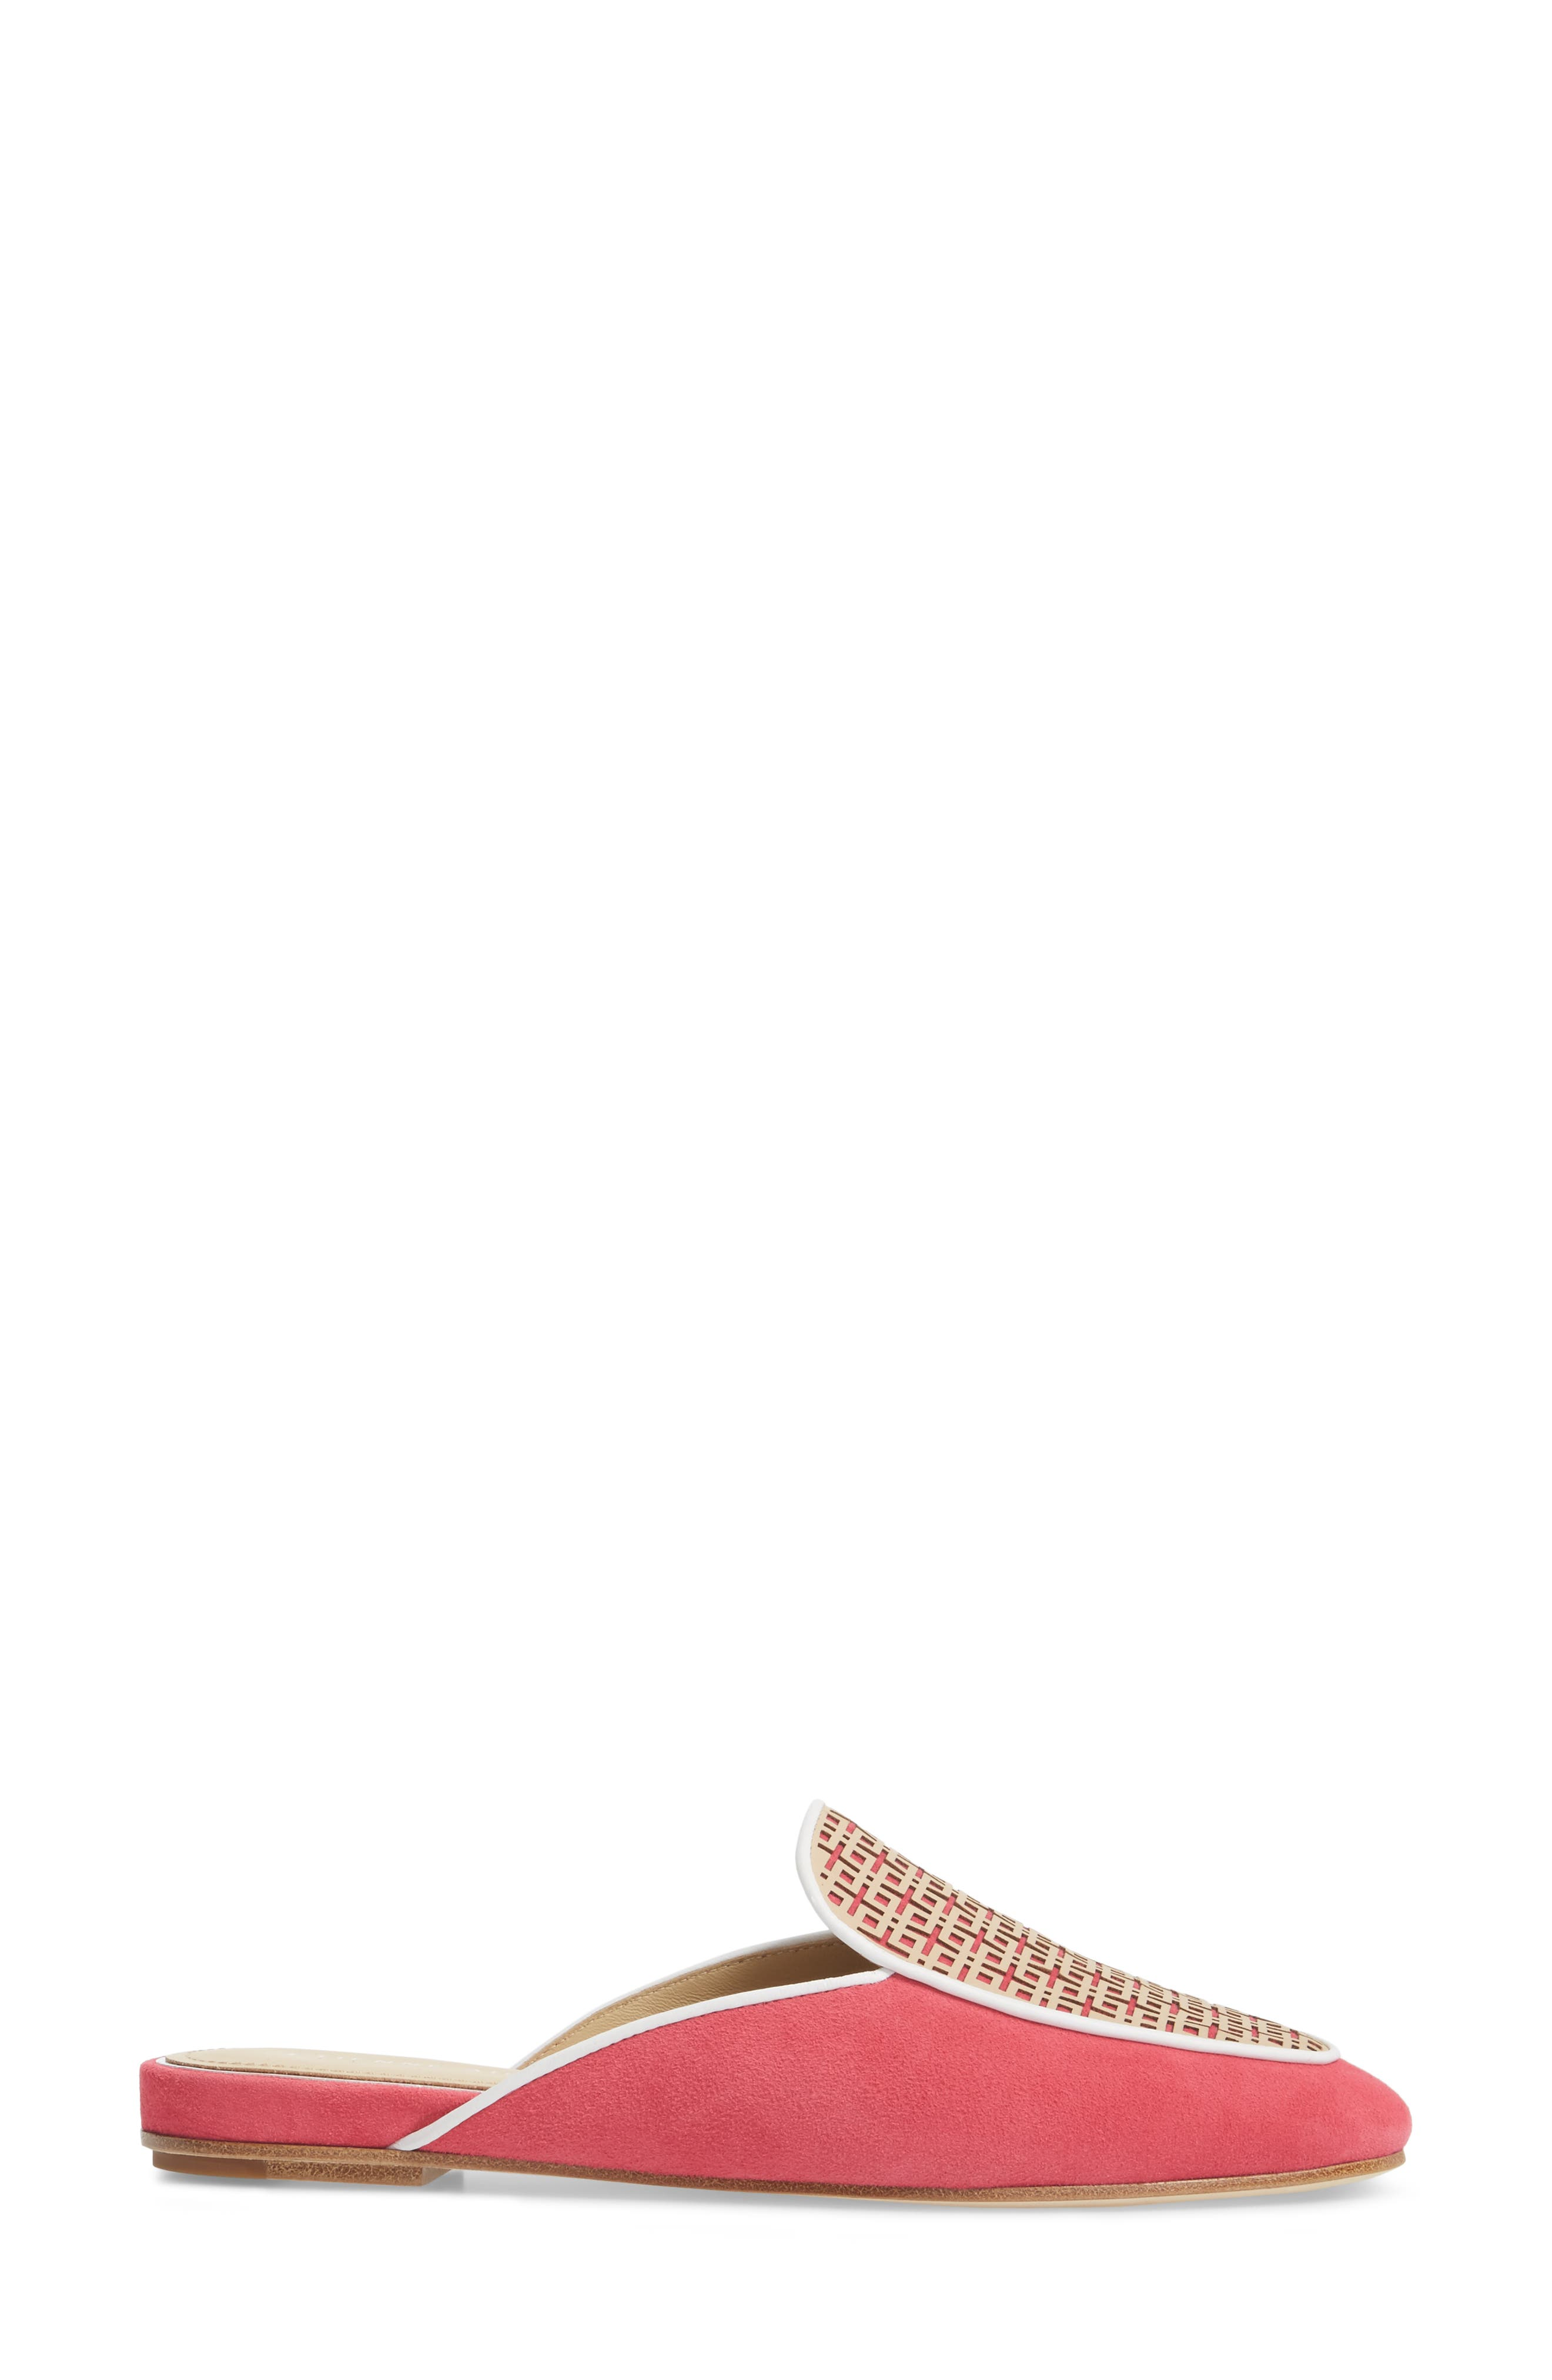 Caymen Mule,                             Alternate thumbnail 3, color,                             Natural/ Peony/ White